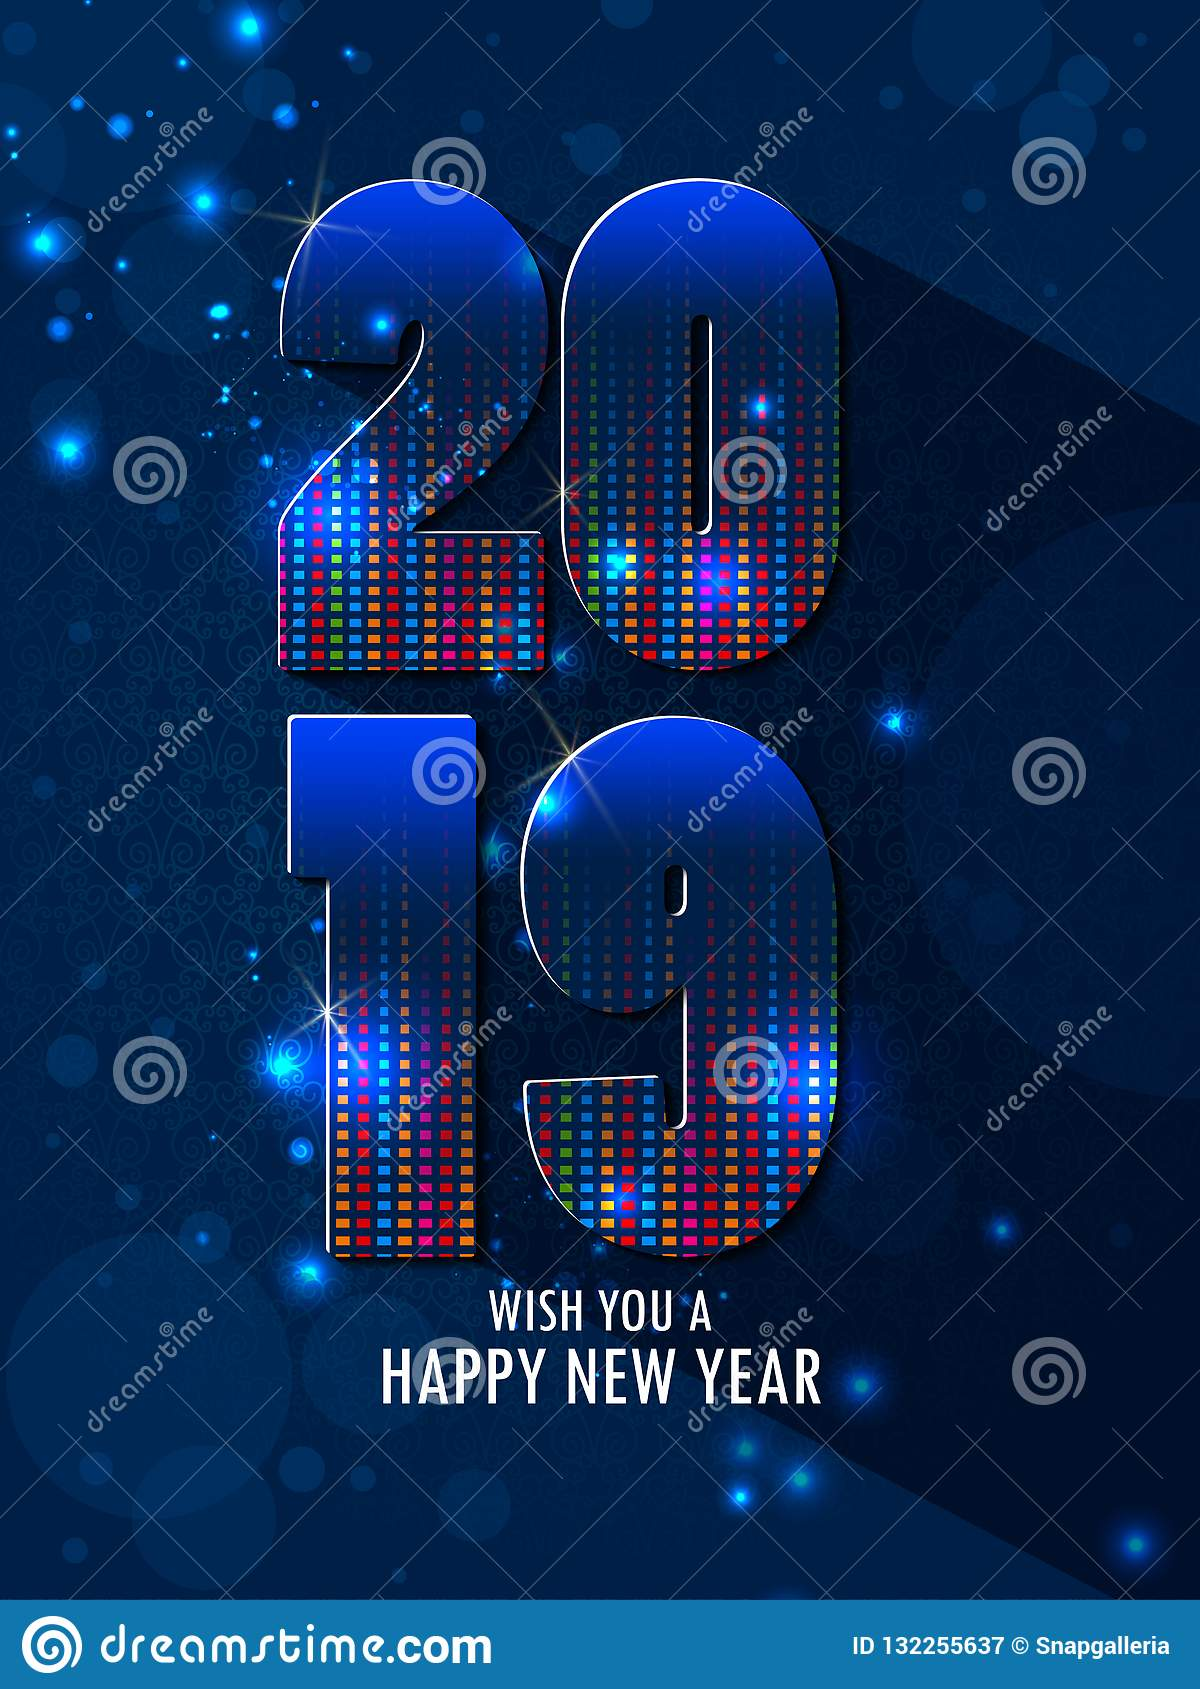 Happy New Year Editing Background 52